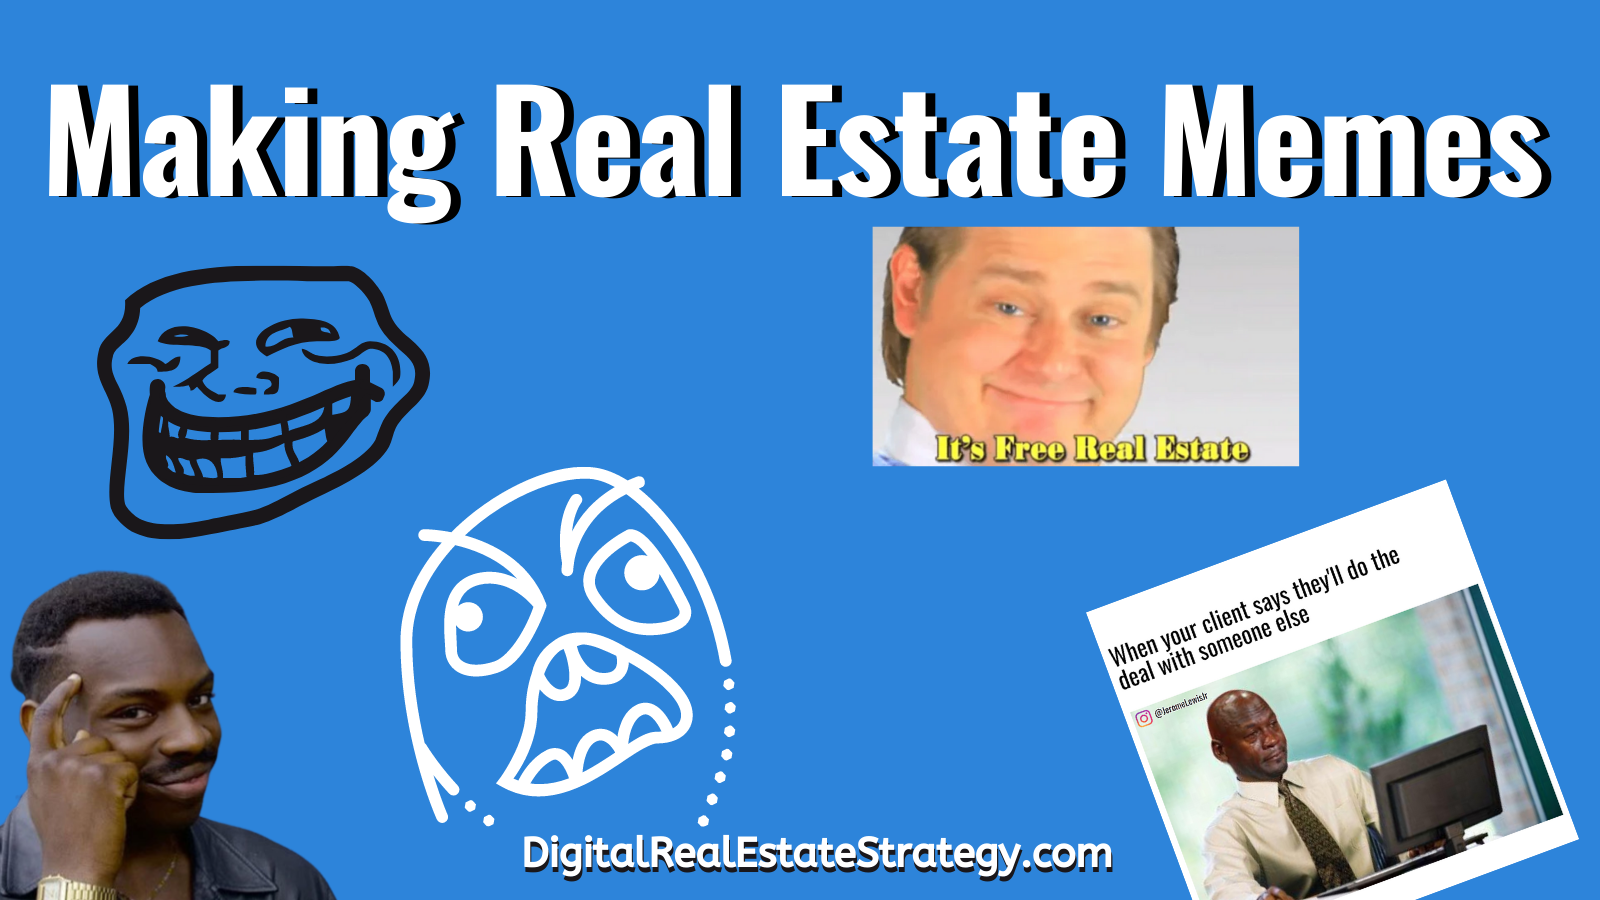 Making Real Estate Memes - Jerome Lewis - eXp Realty - Philadelphia - Real Estate Memes